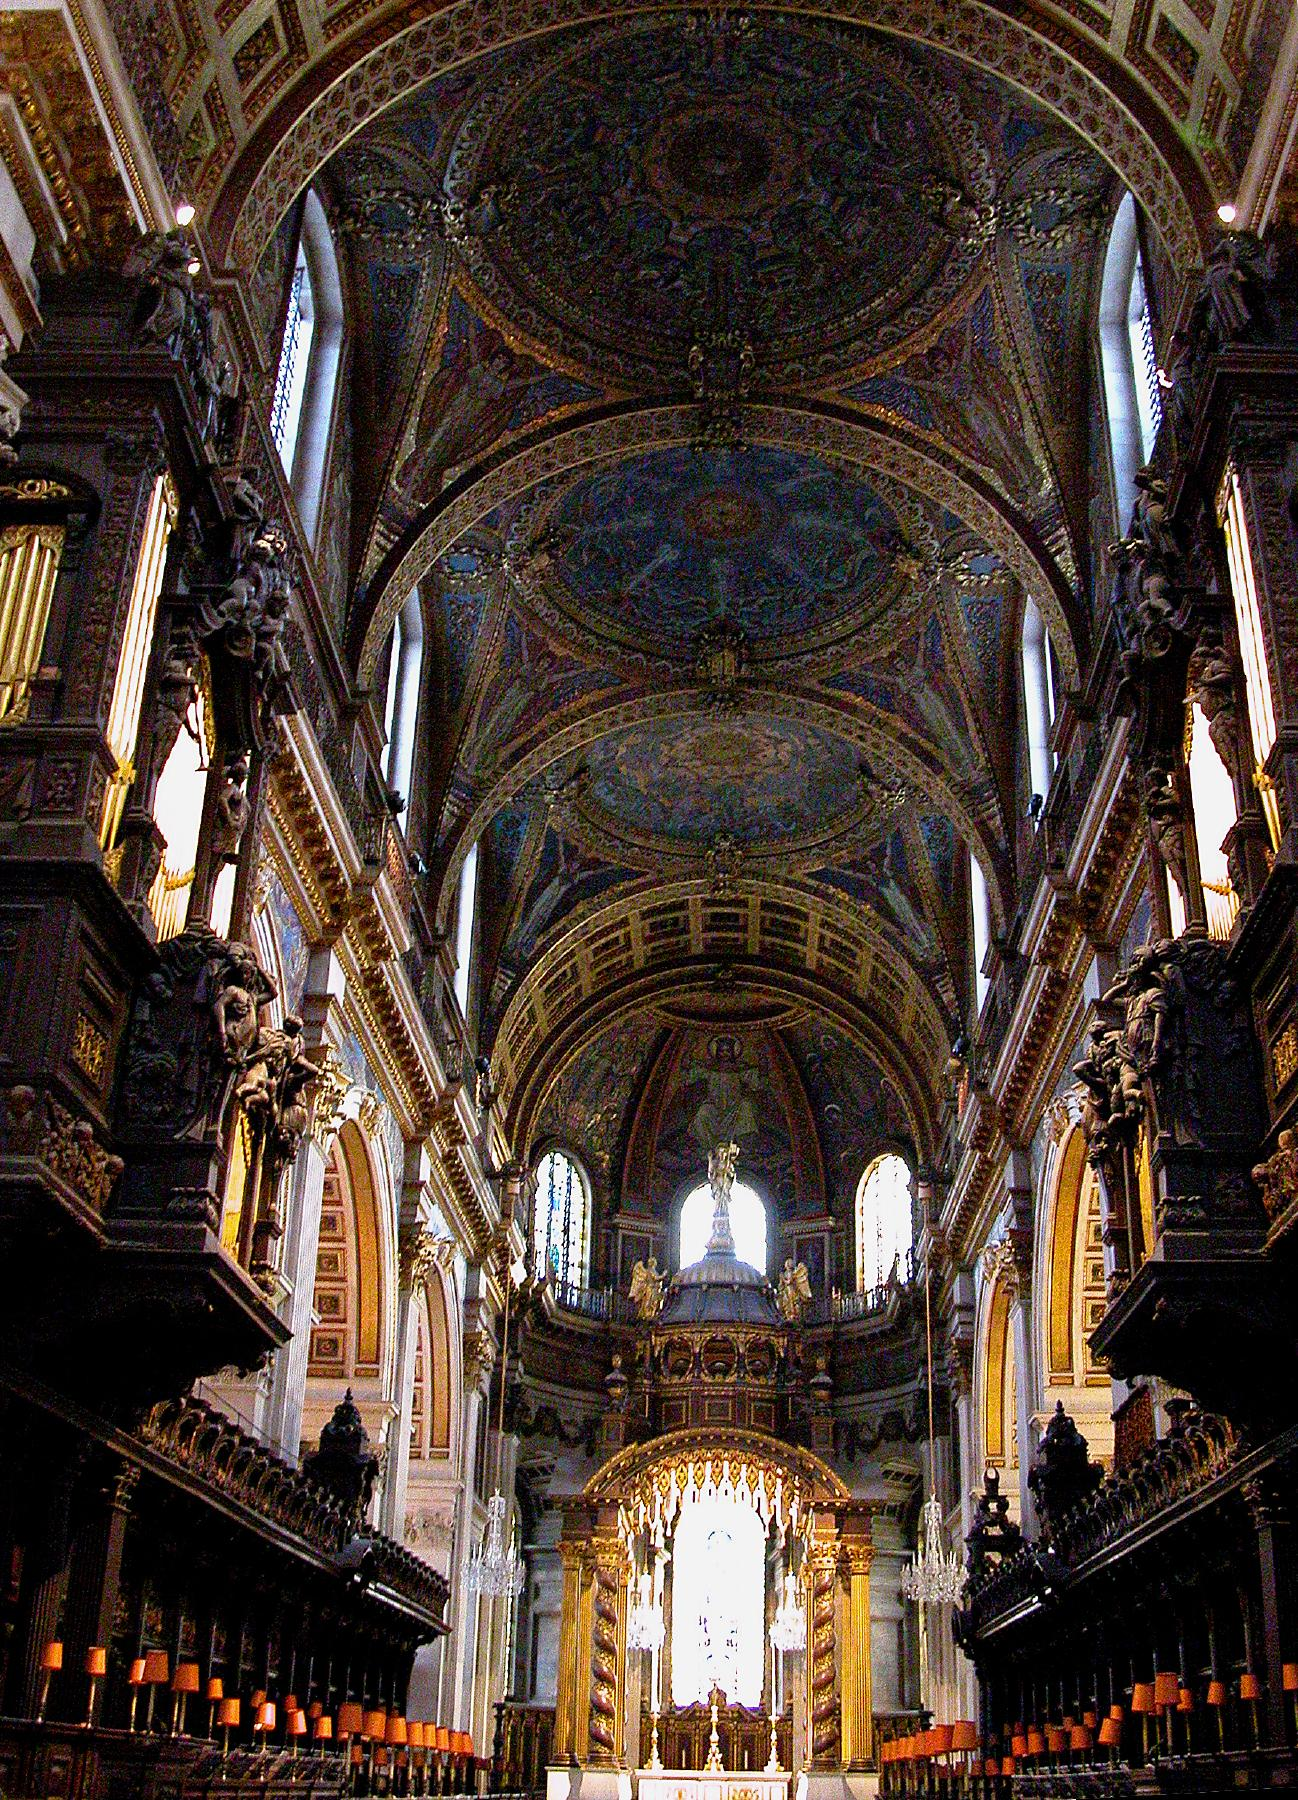 File:St Paul's Cathedral Choir looking east, London, UK - Diliff.jpg